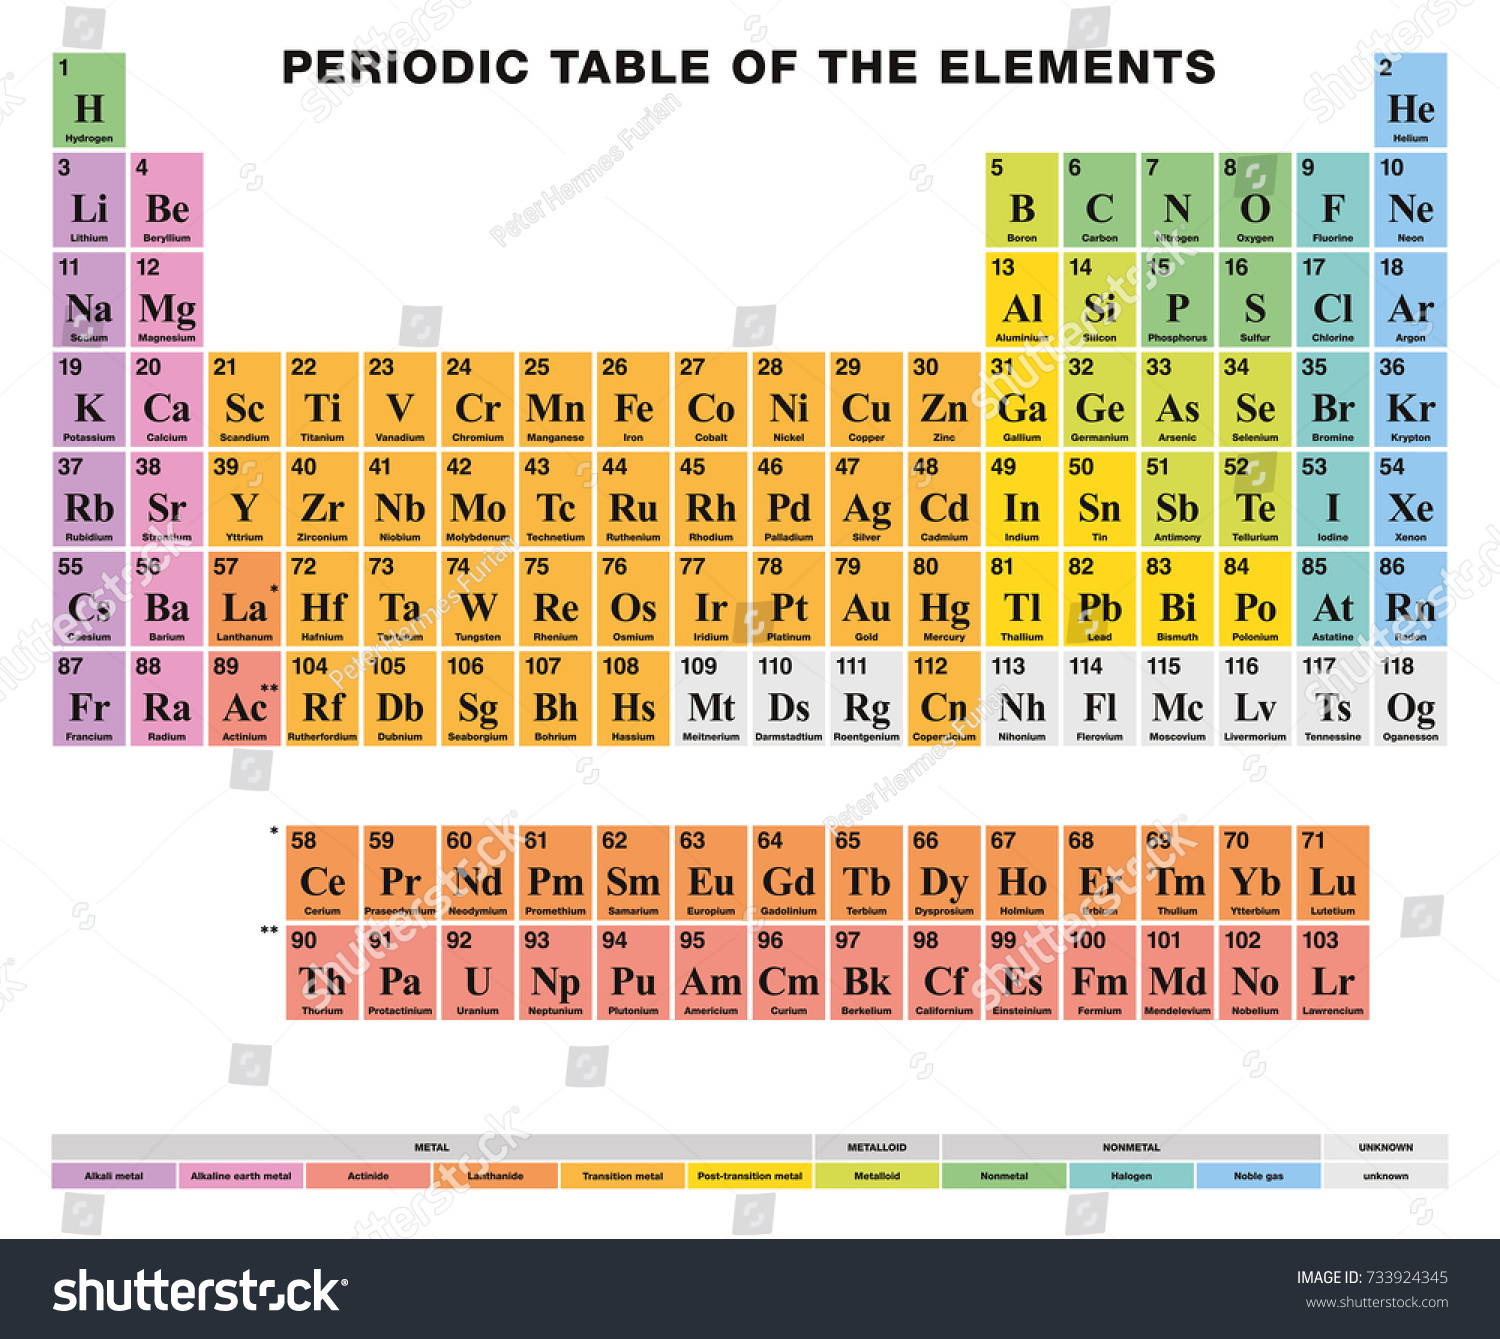 Periodic table elements english labeling tabular stock vector periodic table of the elements english labeling tabular arrangement of 118 chemical elements gamestrikefo Gallery